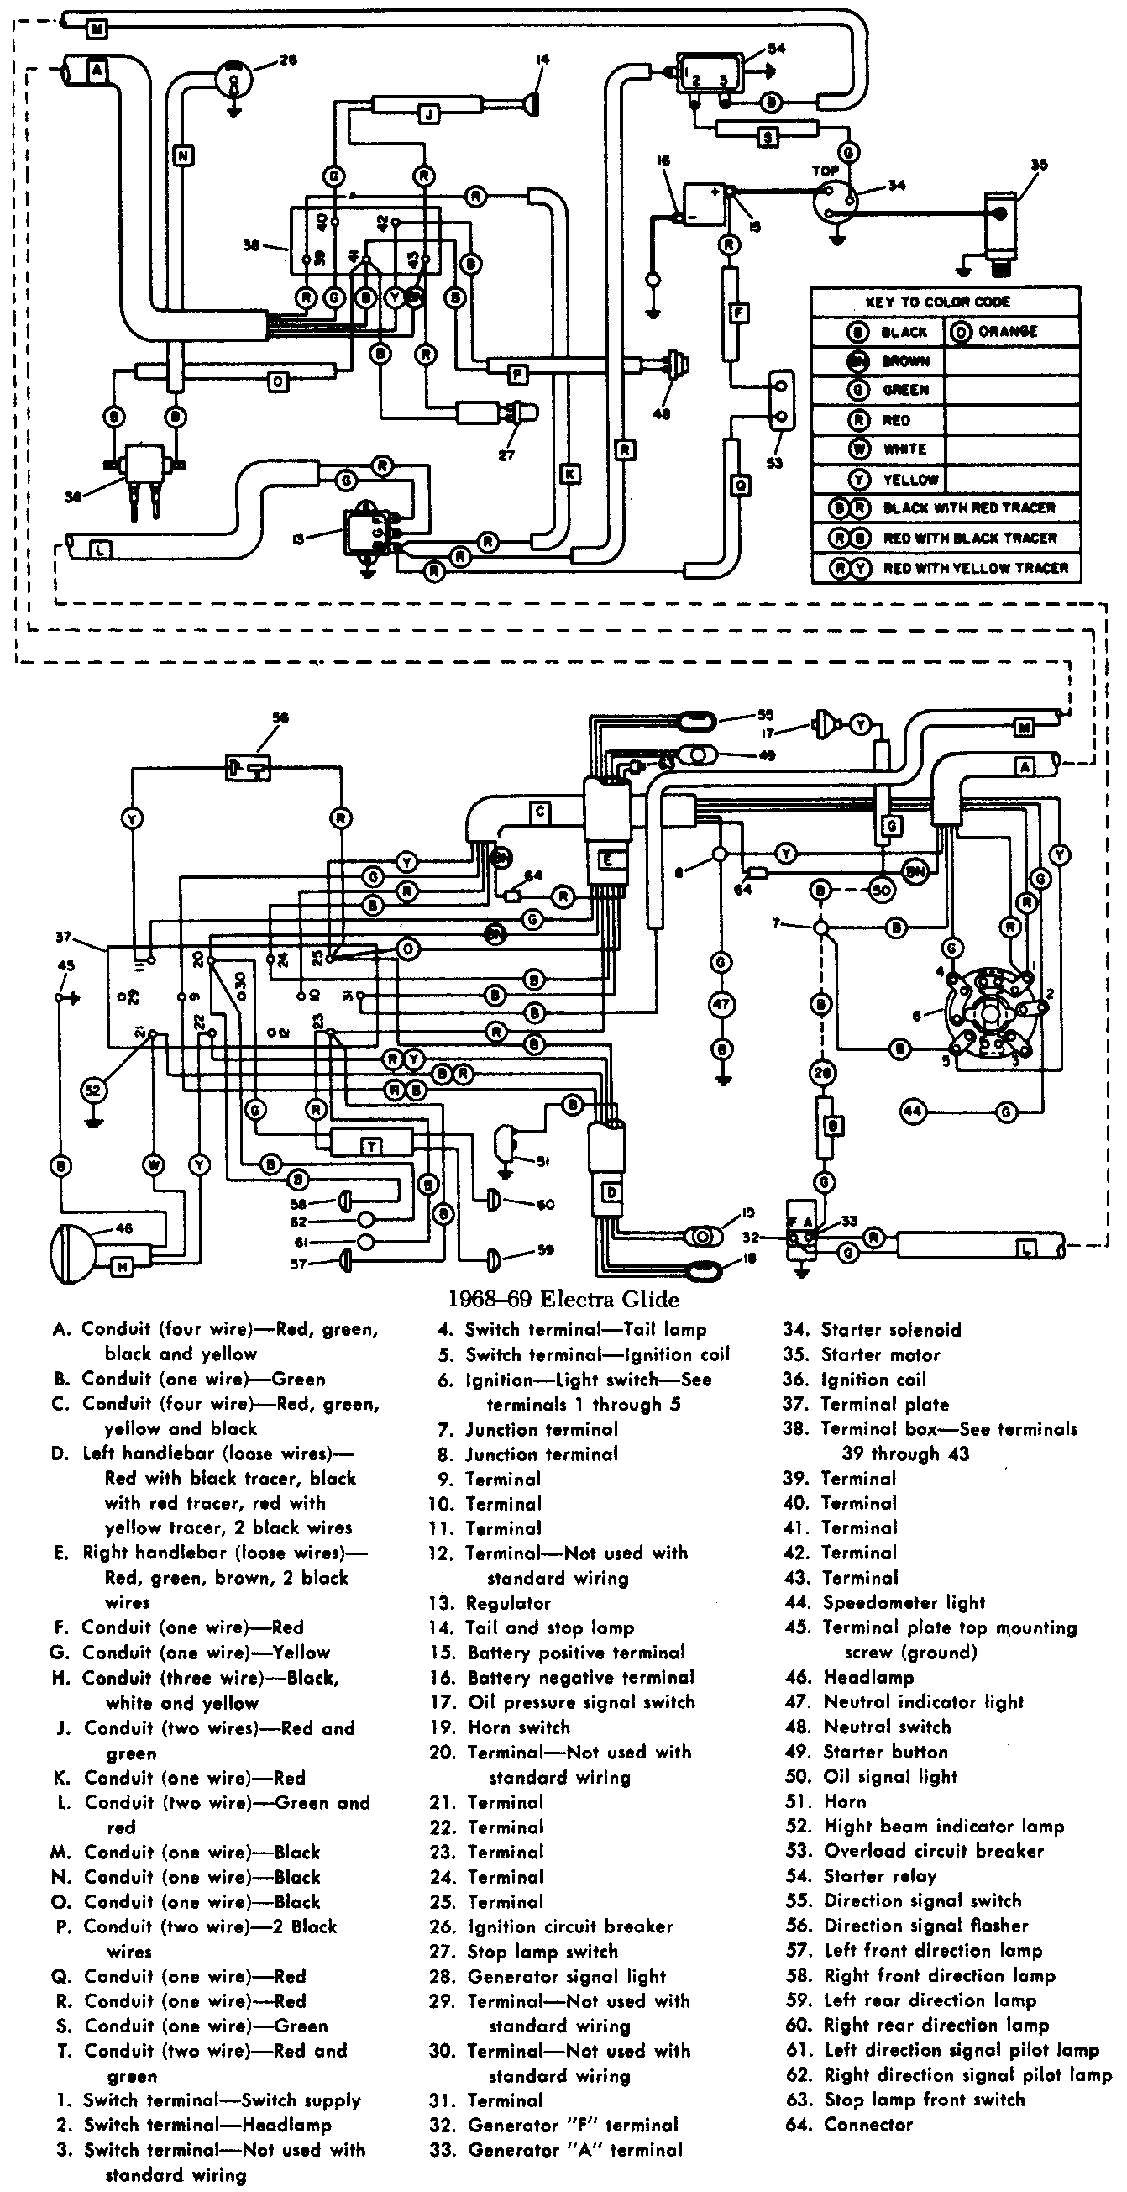 1992 Harley Davidson Ultra Glide Wiring Diagram Wiring Diagram Session Session Lionsclubviterbo It